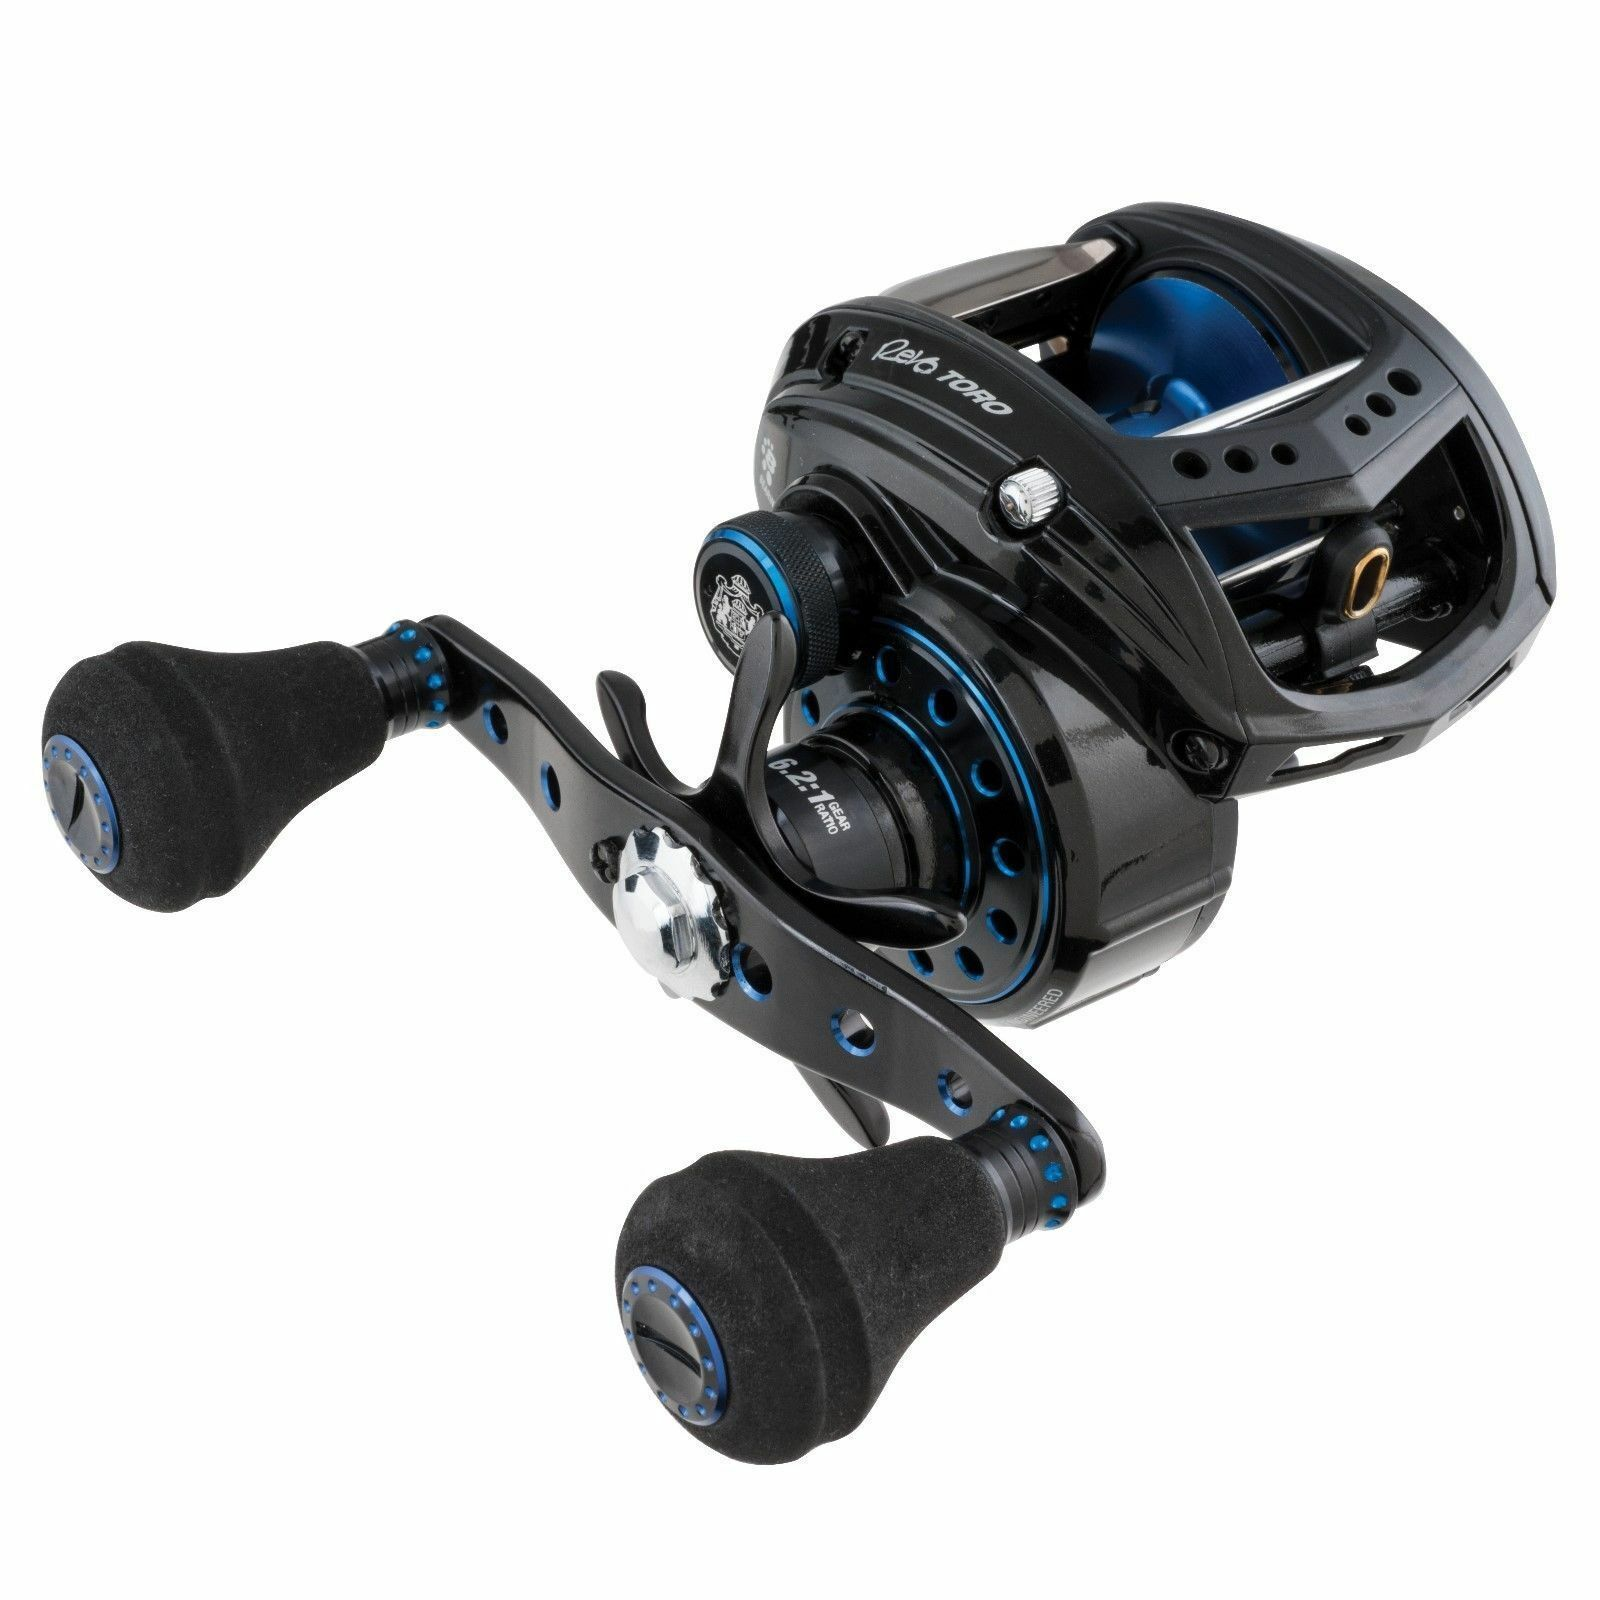 Abu Garcia Revo Toro Beast t2 bst51 left SPINN Fishing Reel